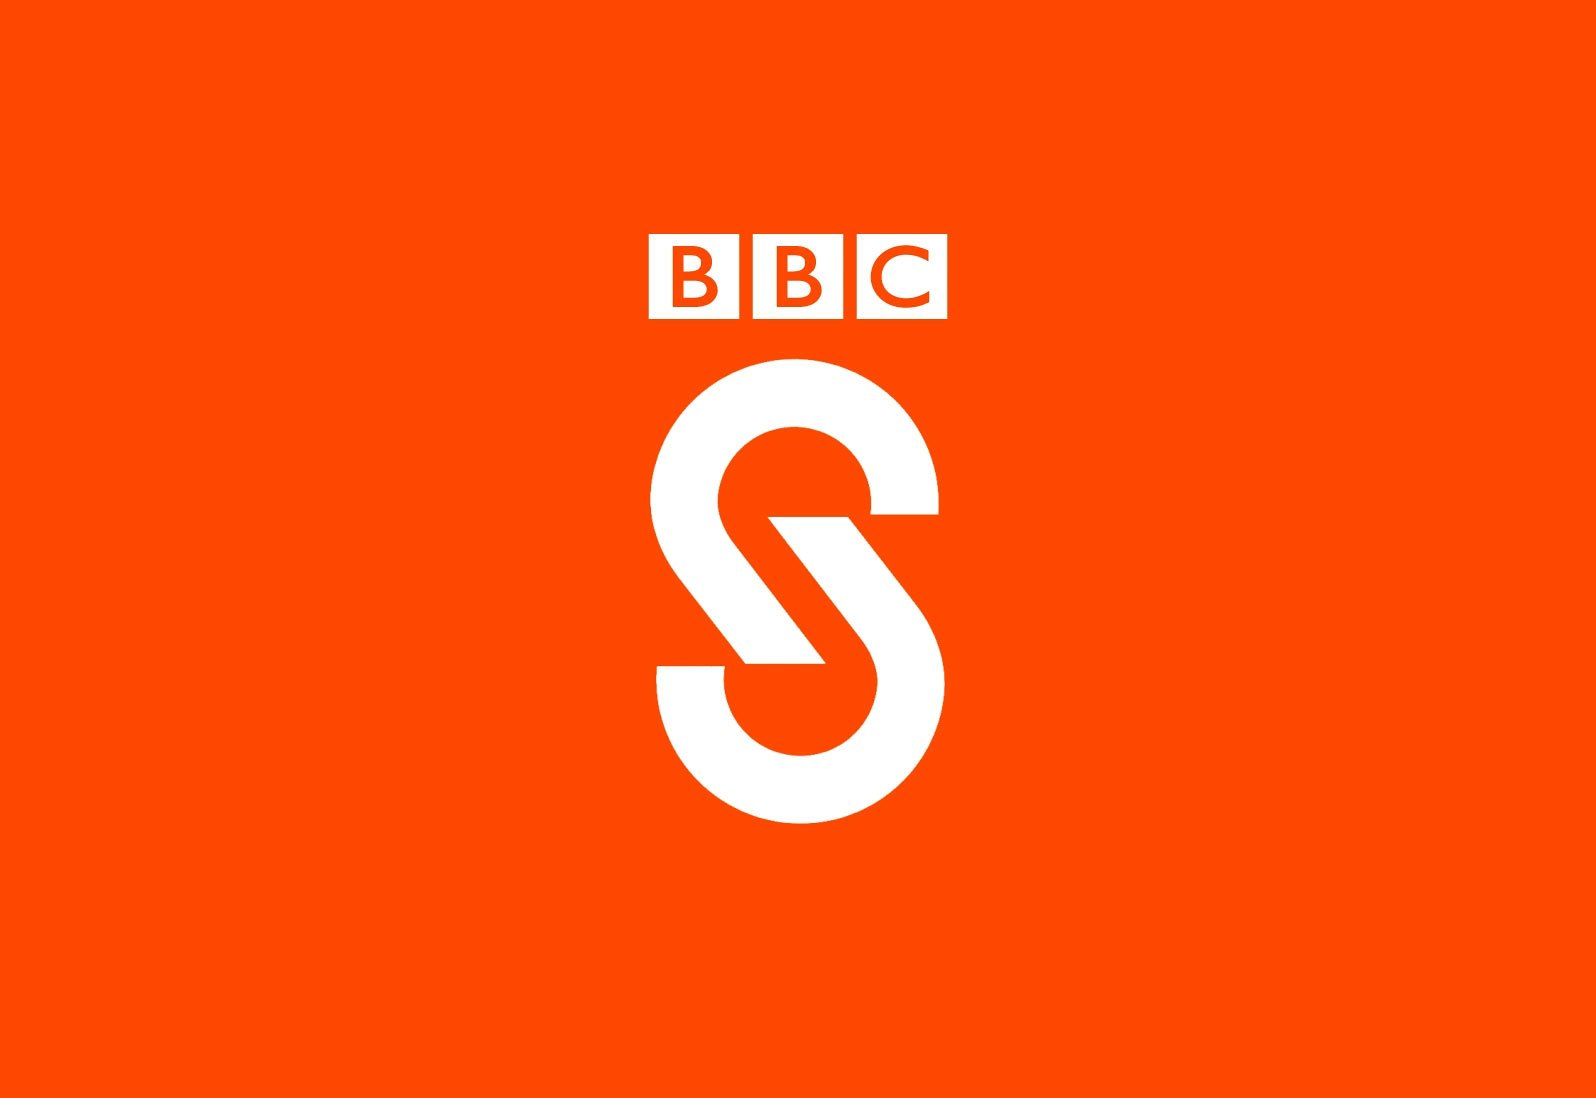 The logo for BBC Sounds